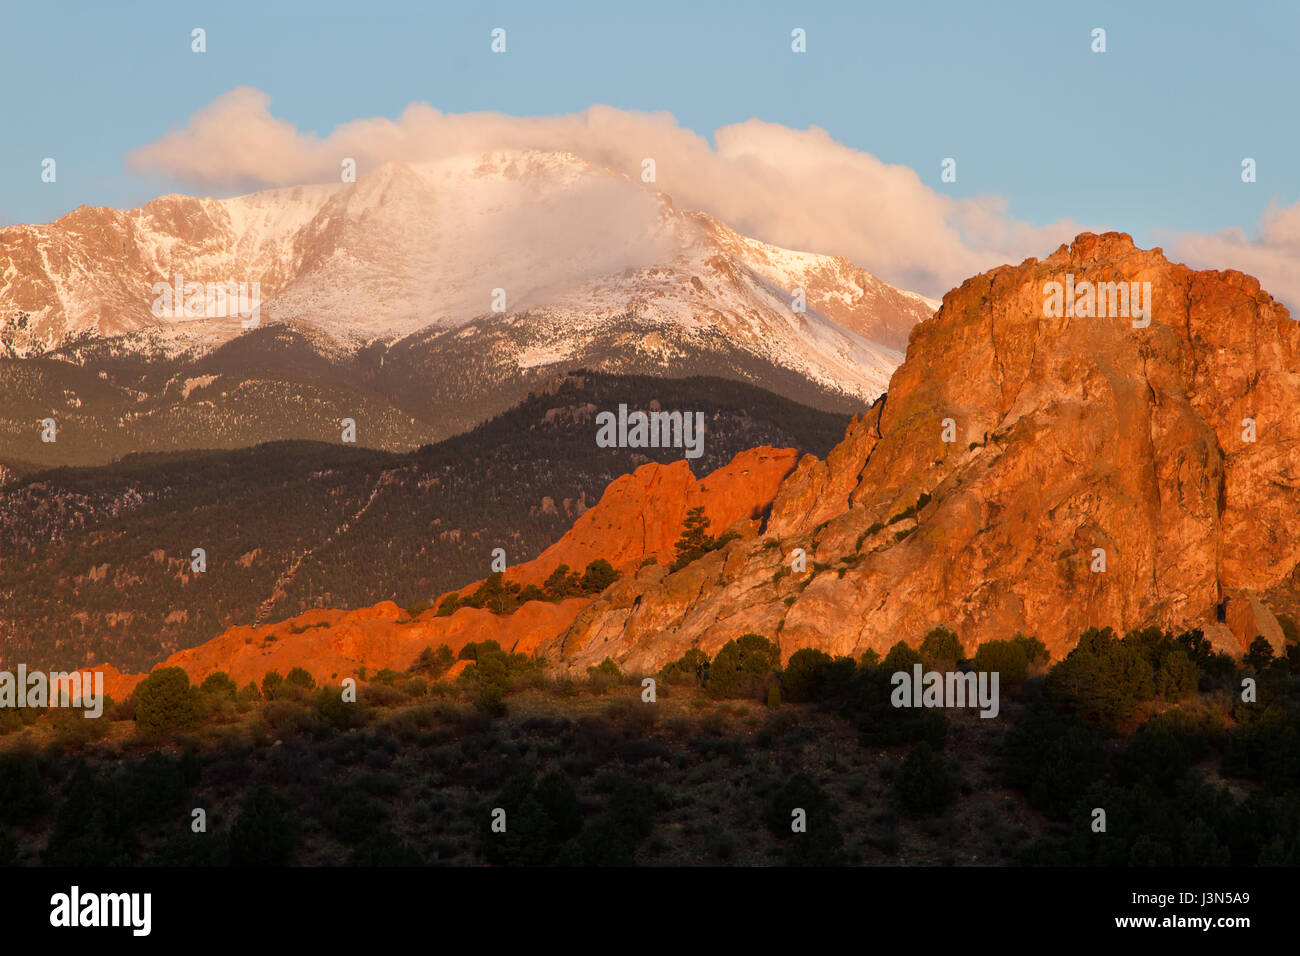 Sunrise image of Pikes Peak Mountain and Garden of the Gods in the springtime - Stock Image